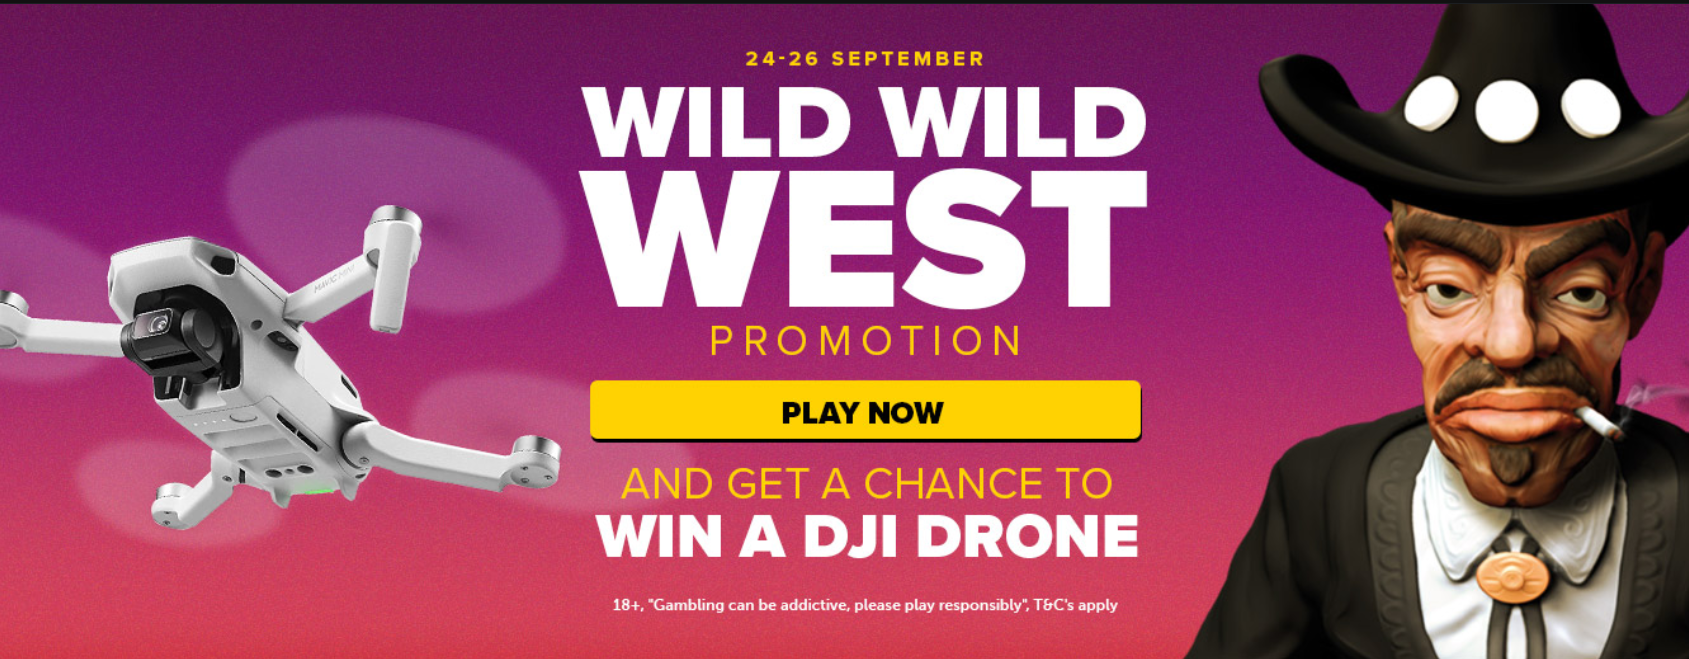 Claim free spins and win a DJI Drone at NexCasino